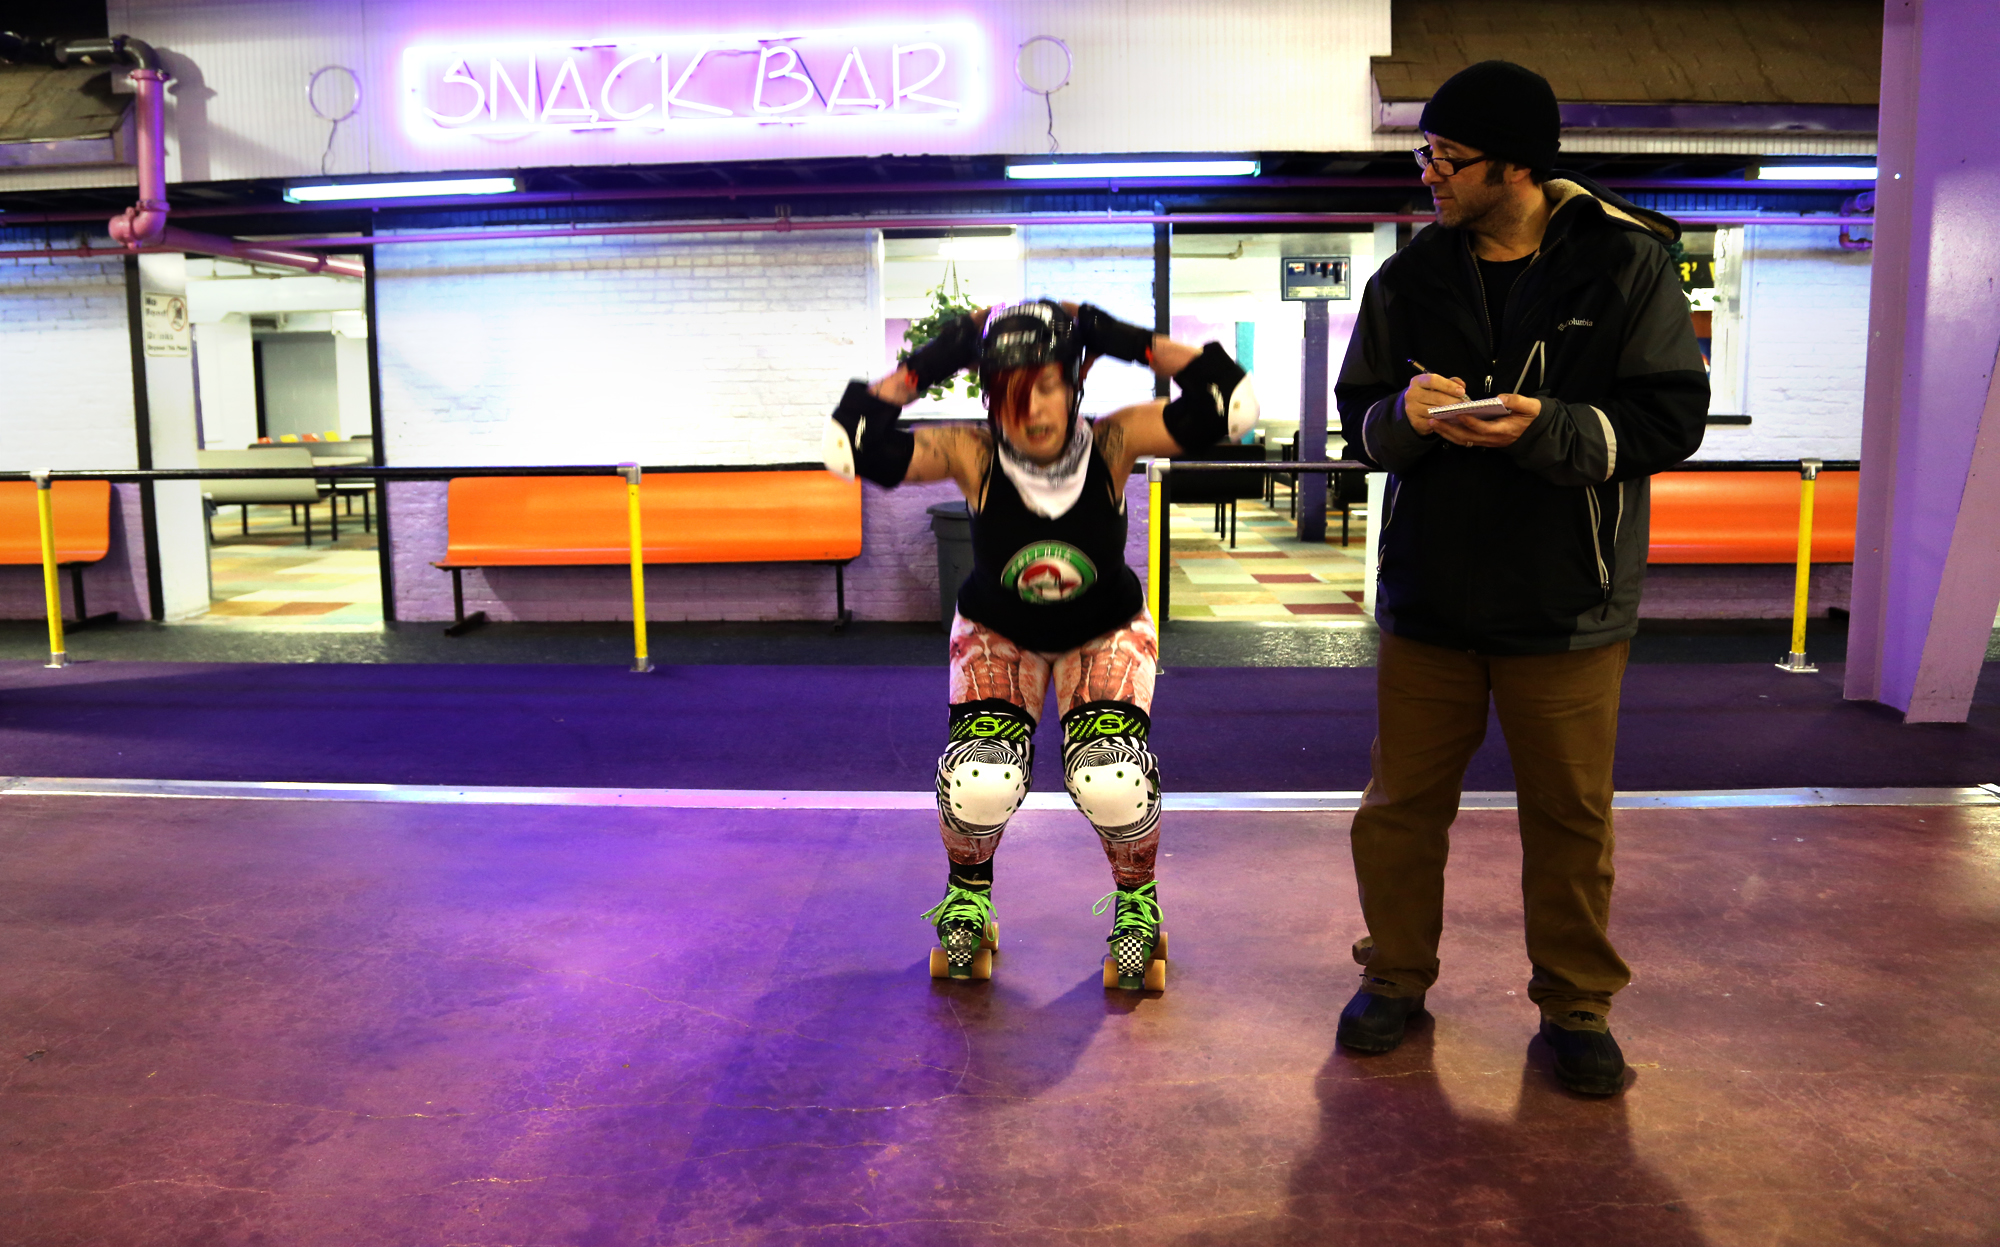 Jason Plotkin, York Daily Record photojournalist, takes notes do derby woman squatting in skates.